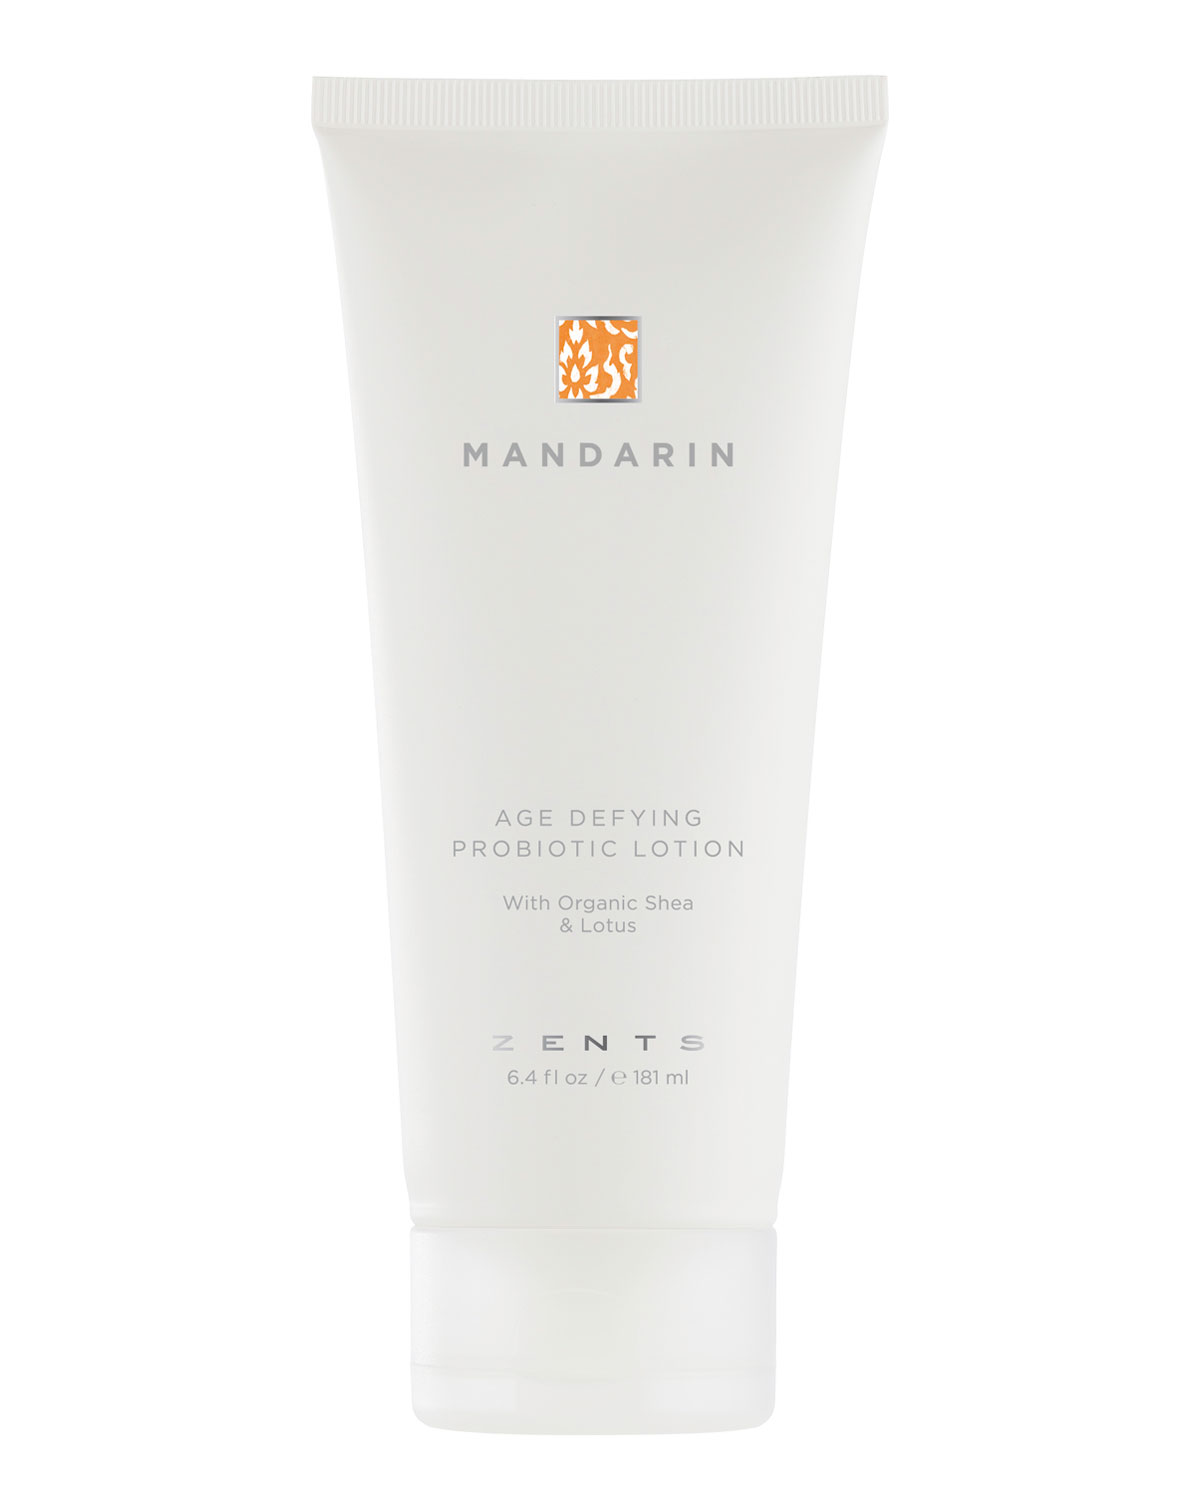 6 oz. Mandarin Age Defying Probiotic Lotion